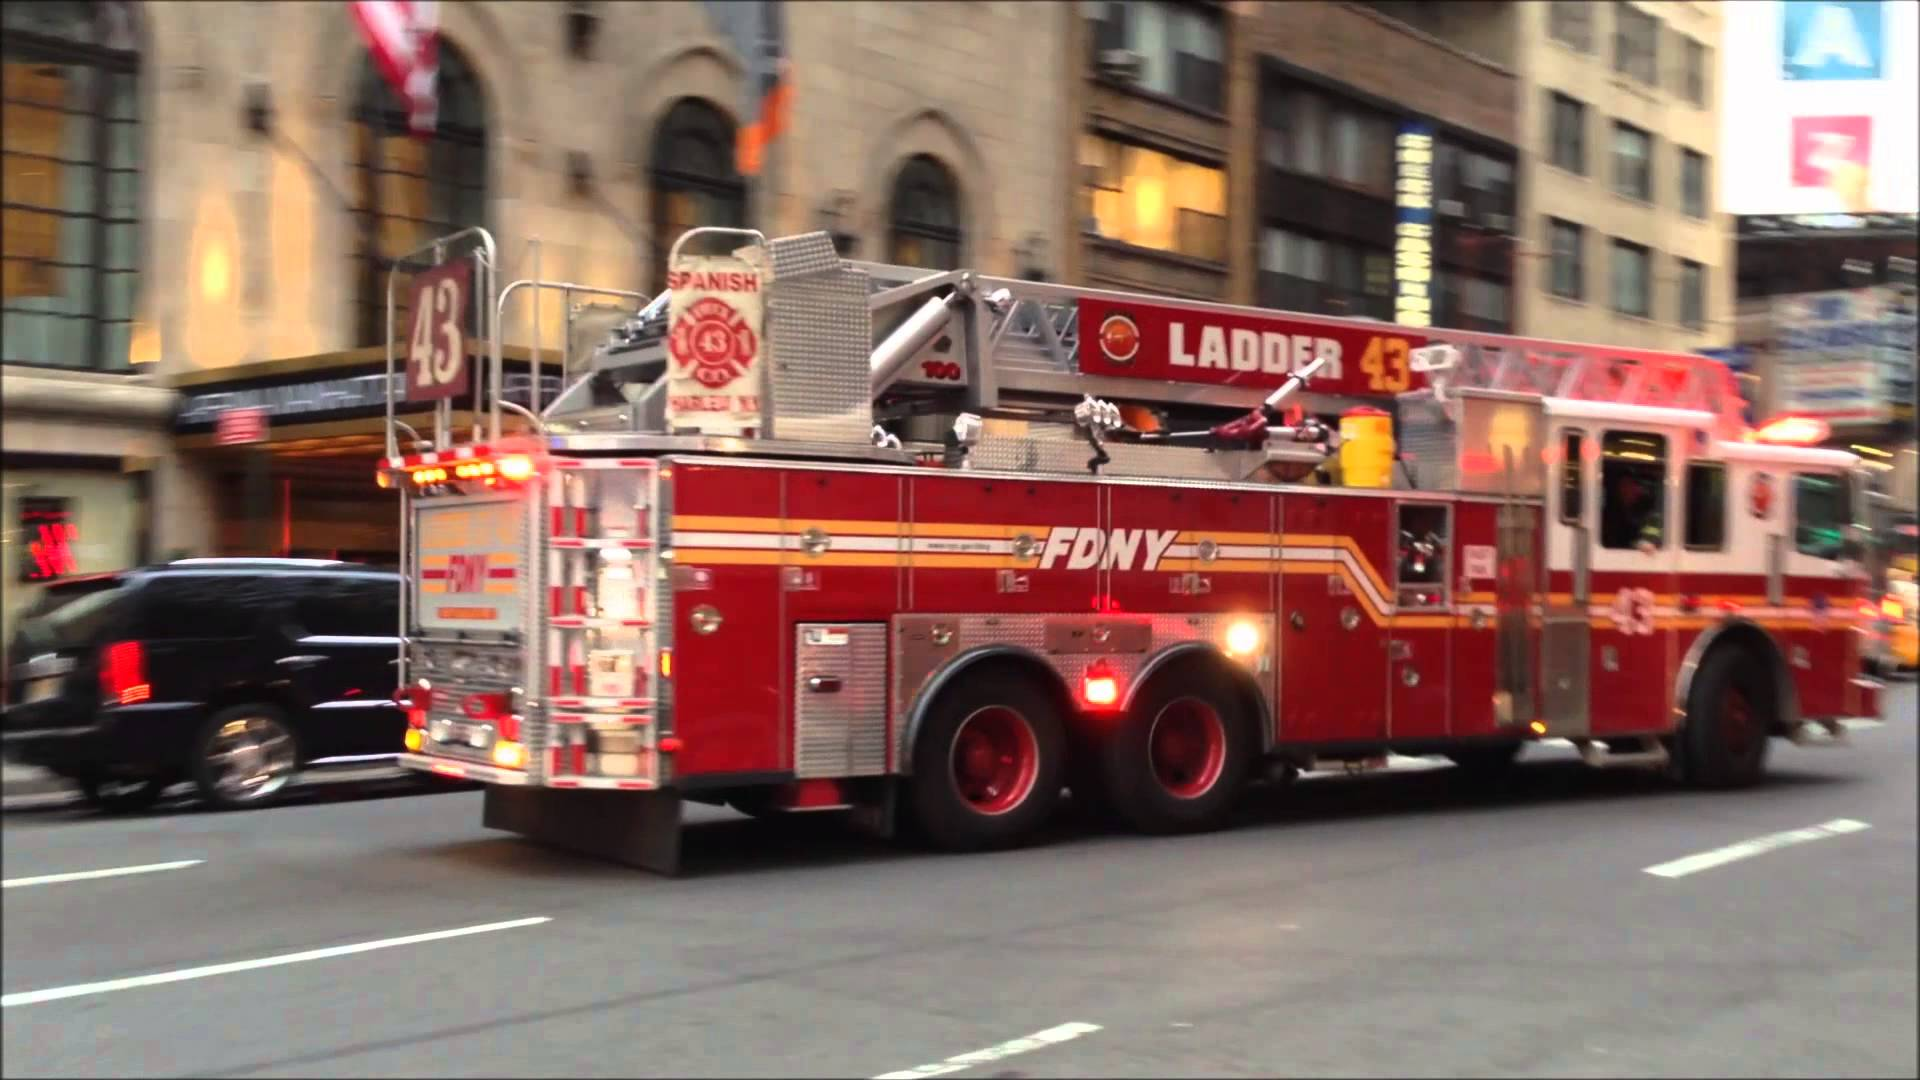 FDNY LADDER 43 ACTING 24 RESPONDING NEAR W 31ST ST 7TH AVE IN 1920x1080